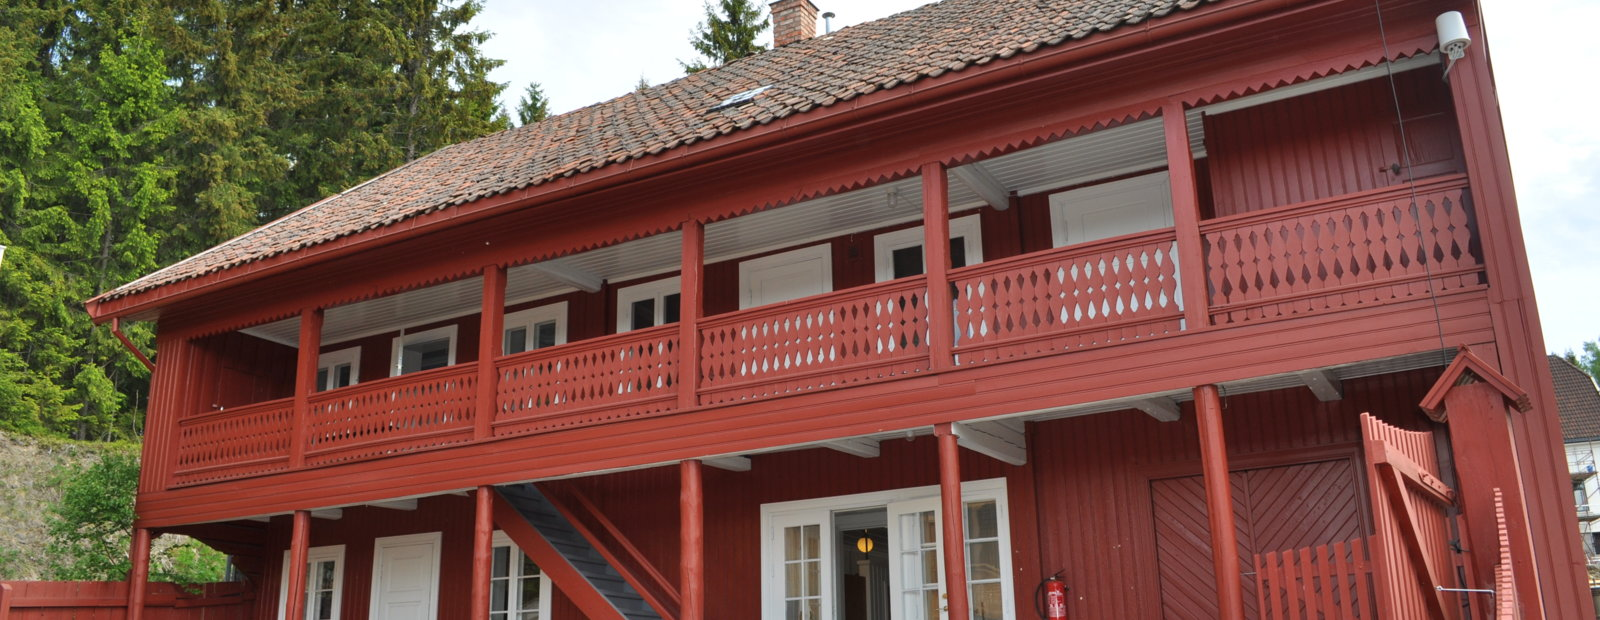 Norges Postmuseum